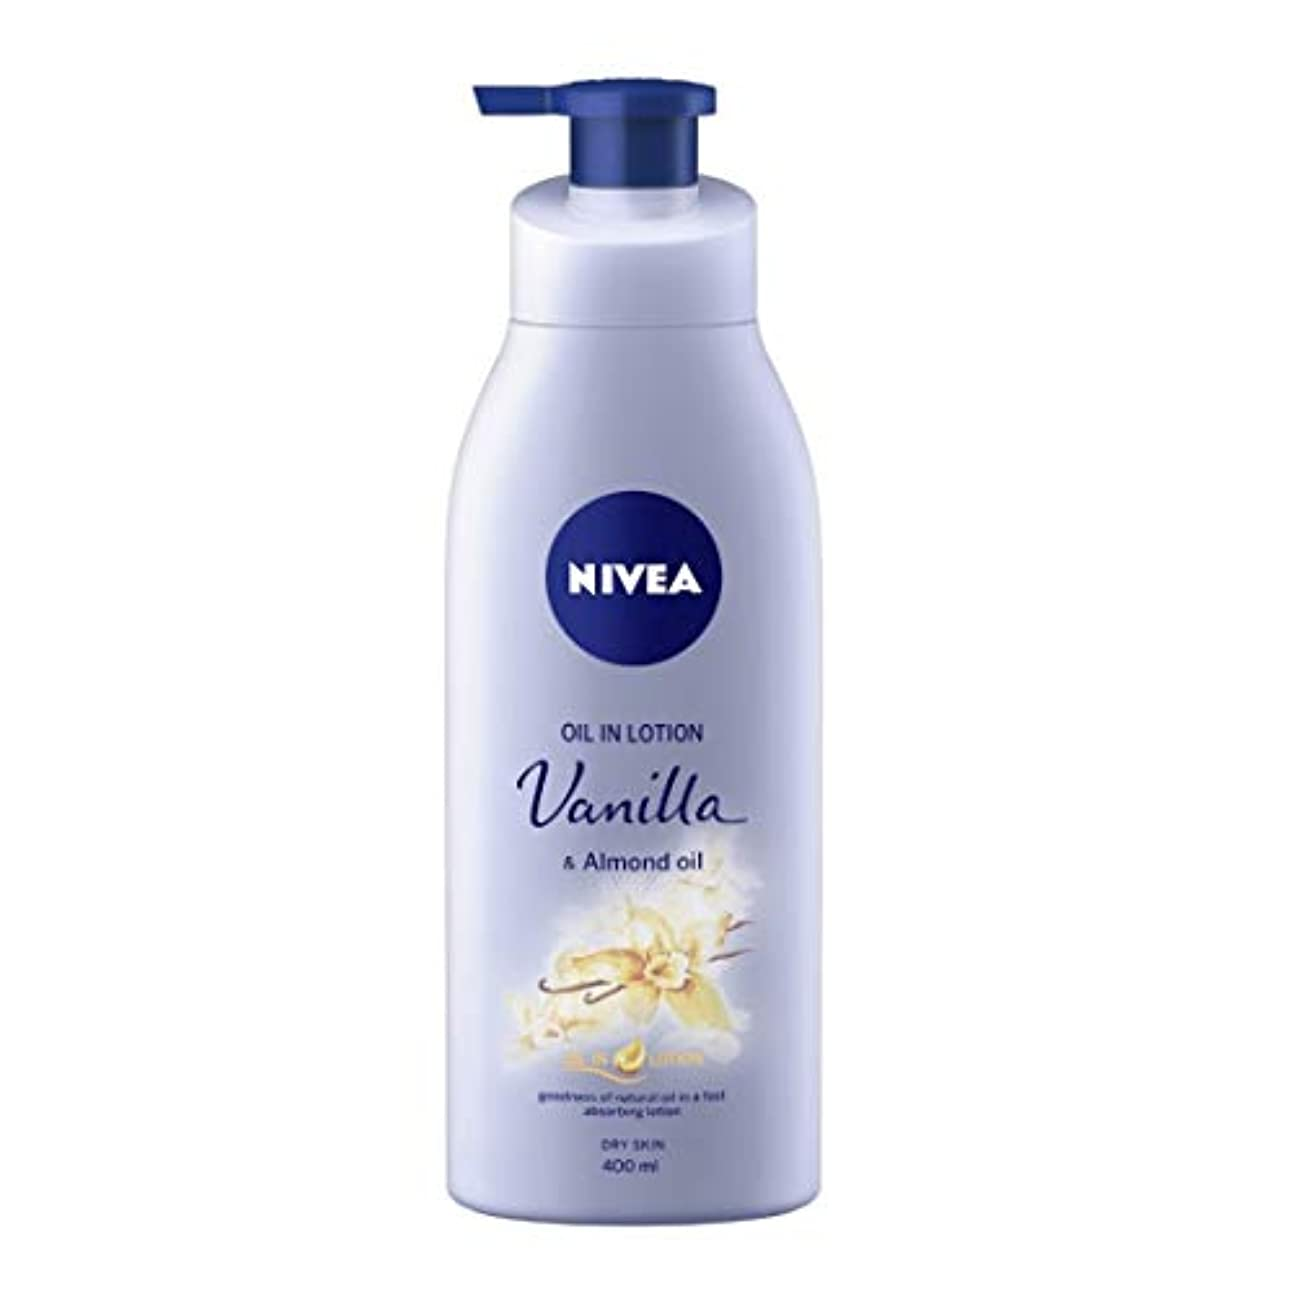 エスカレーター役職同性愛者NIVEA Oil in Lotion, Vanilla and Almond Oil, 400ml